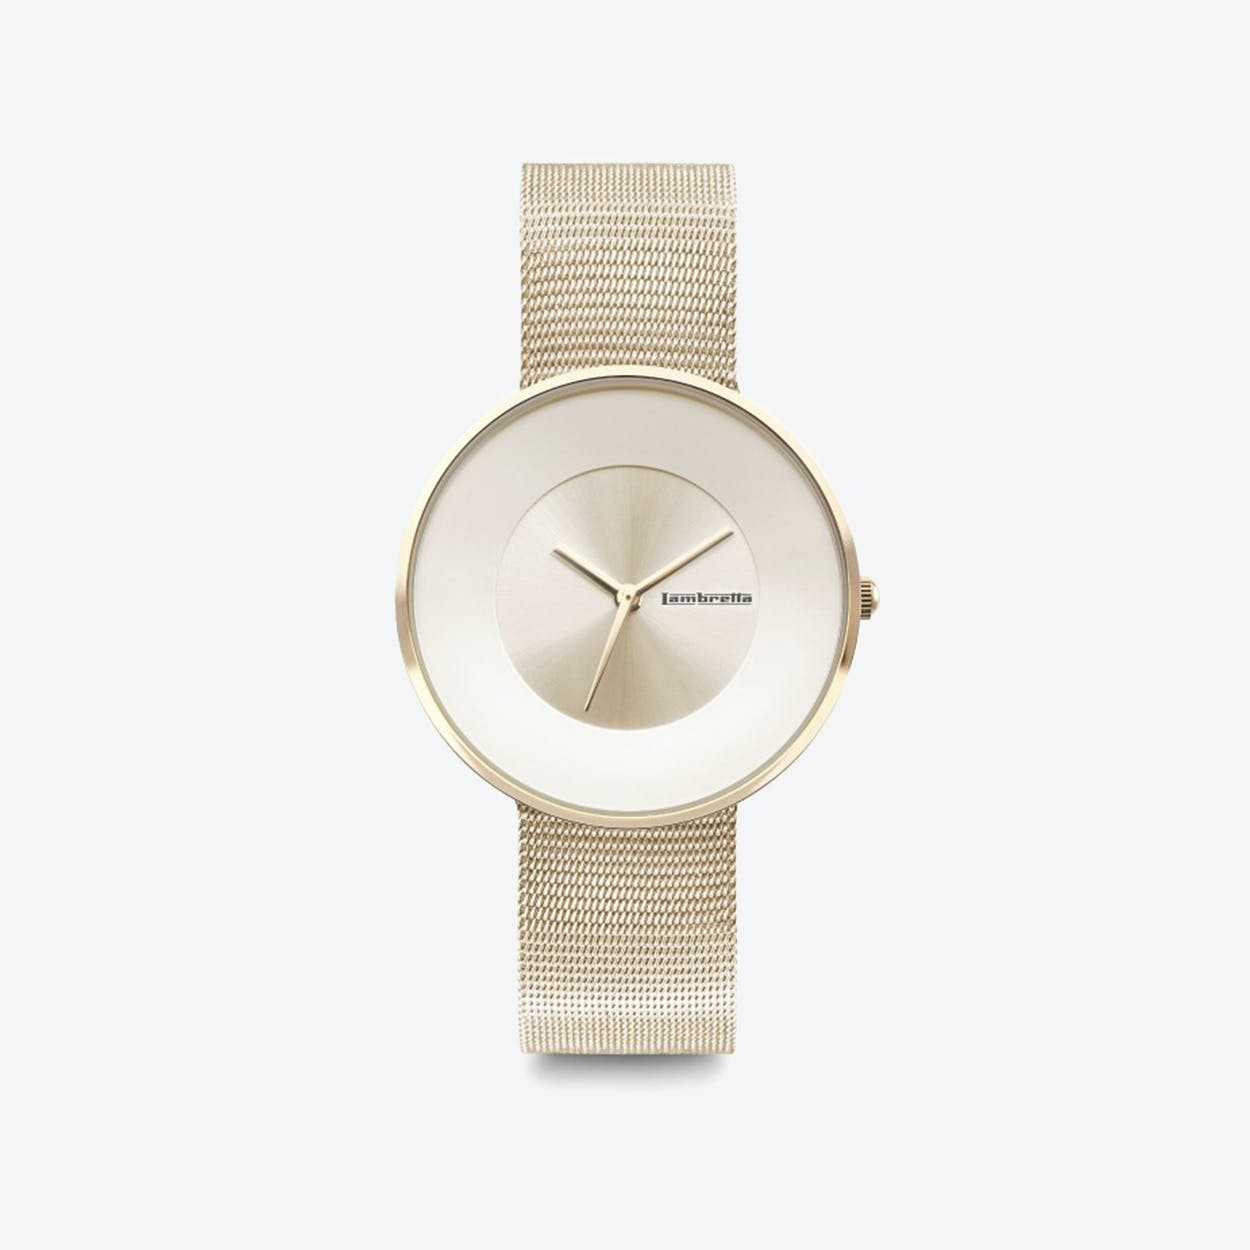 Cielo in All Gold with Mesh Strap, 34mm